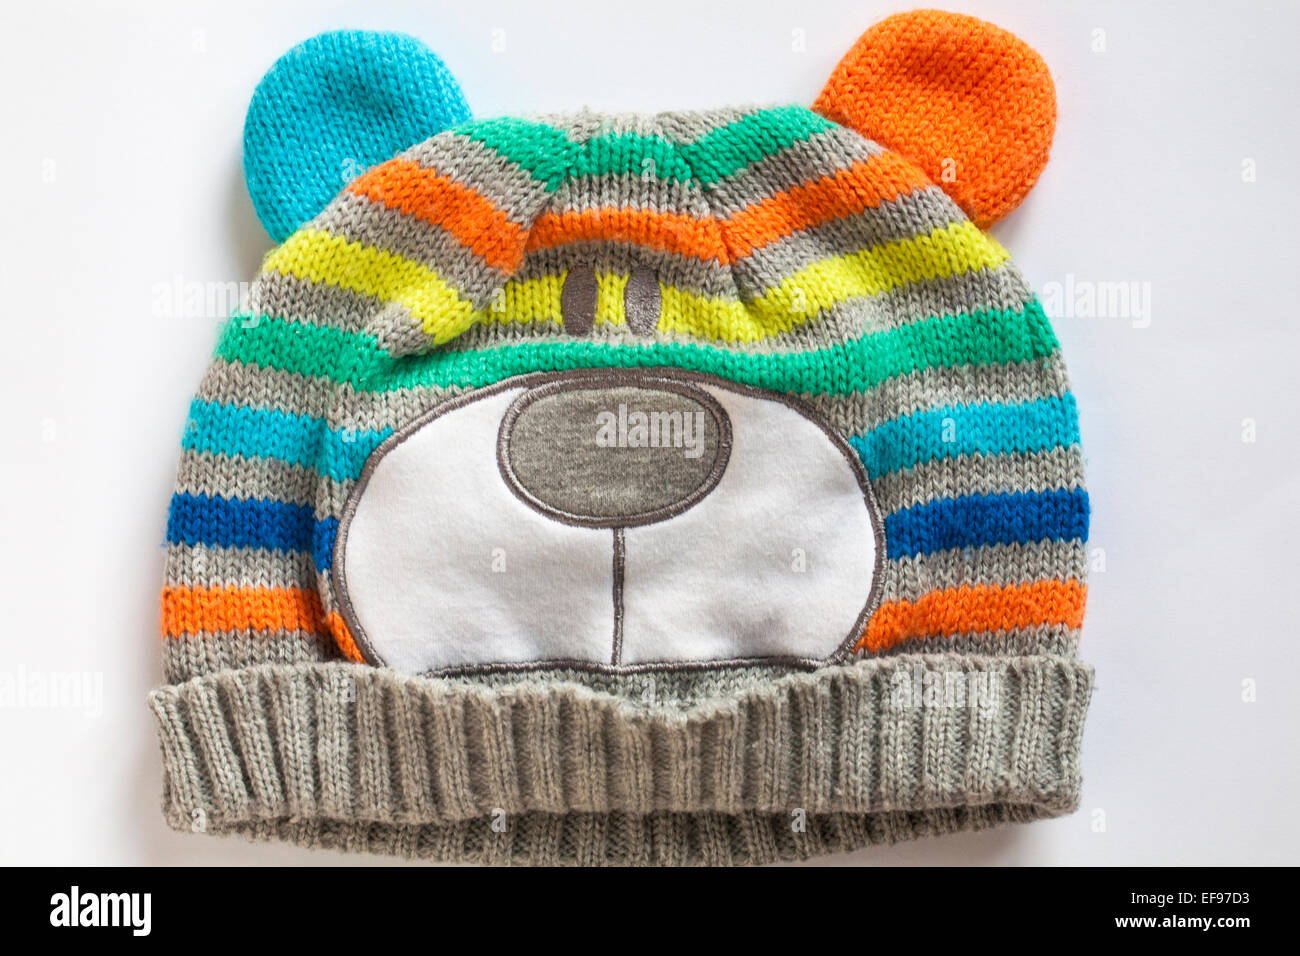 animal hat on white background - Stock Image